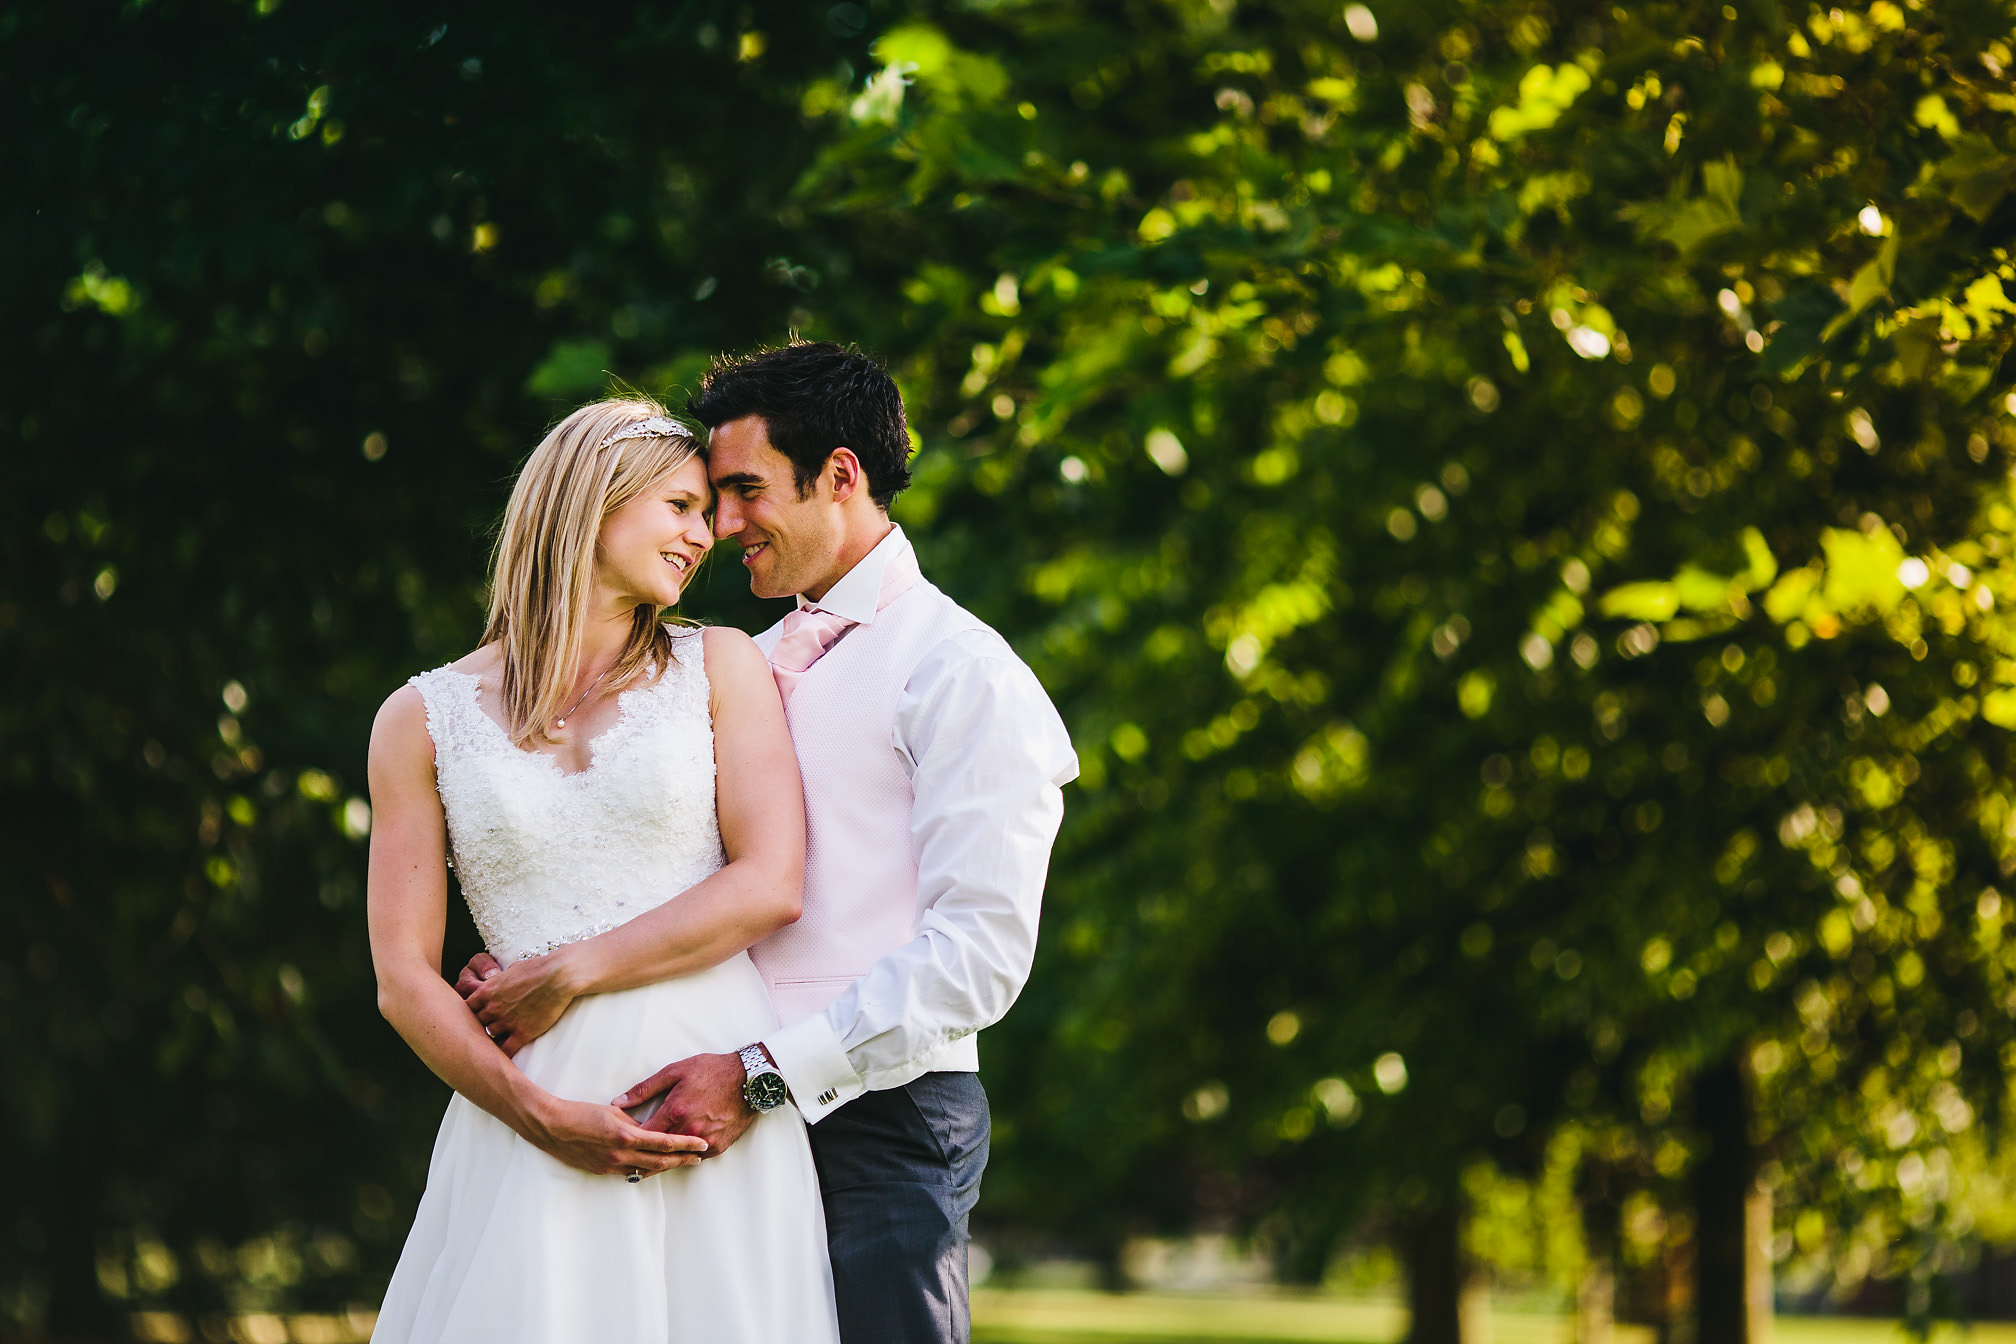 Award Winning Portrait - Kimbolton Castle Wedding